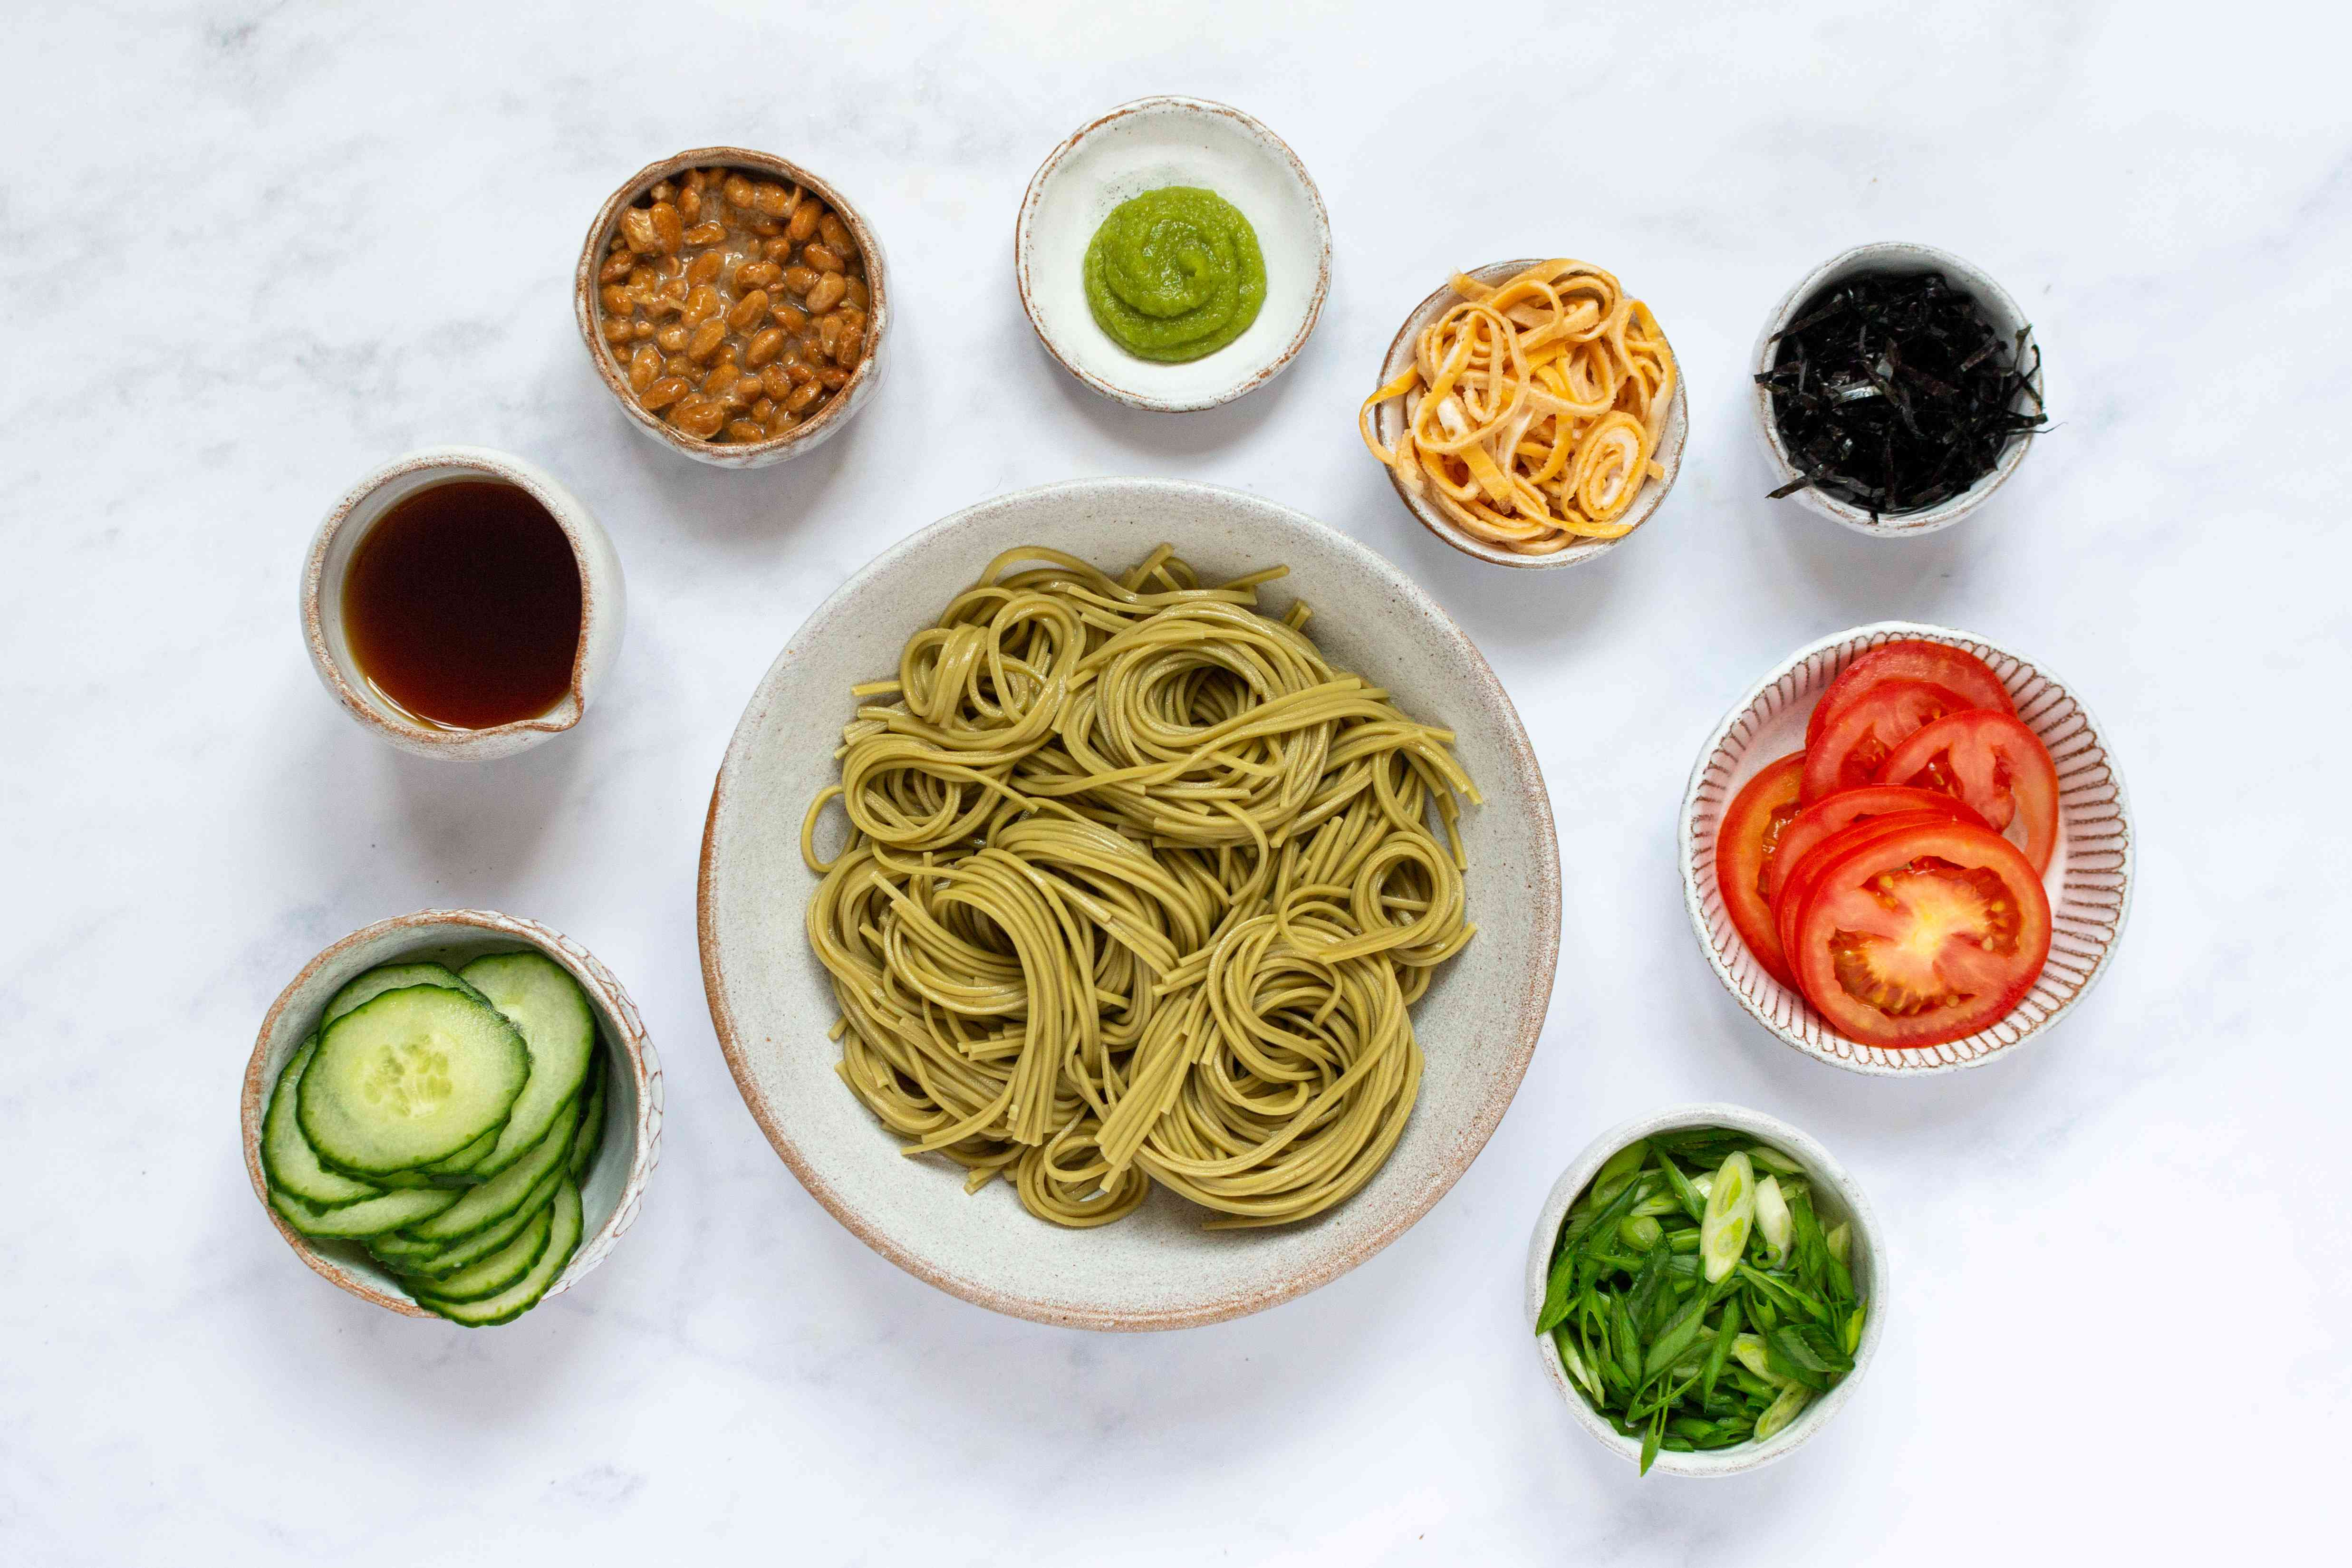 Cold Green Tea Soba Noodles (Cha Soba) with garnishes on the side